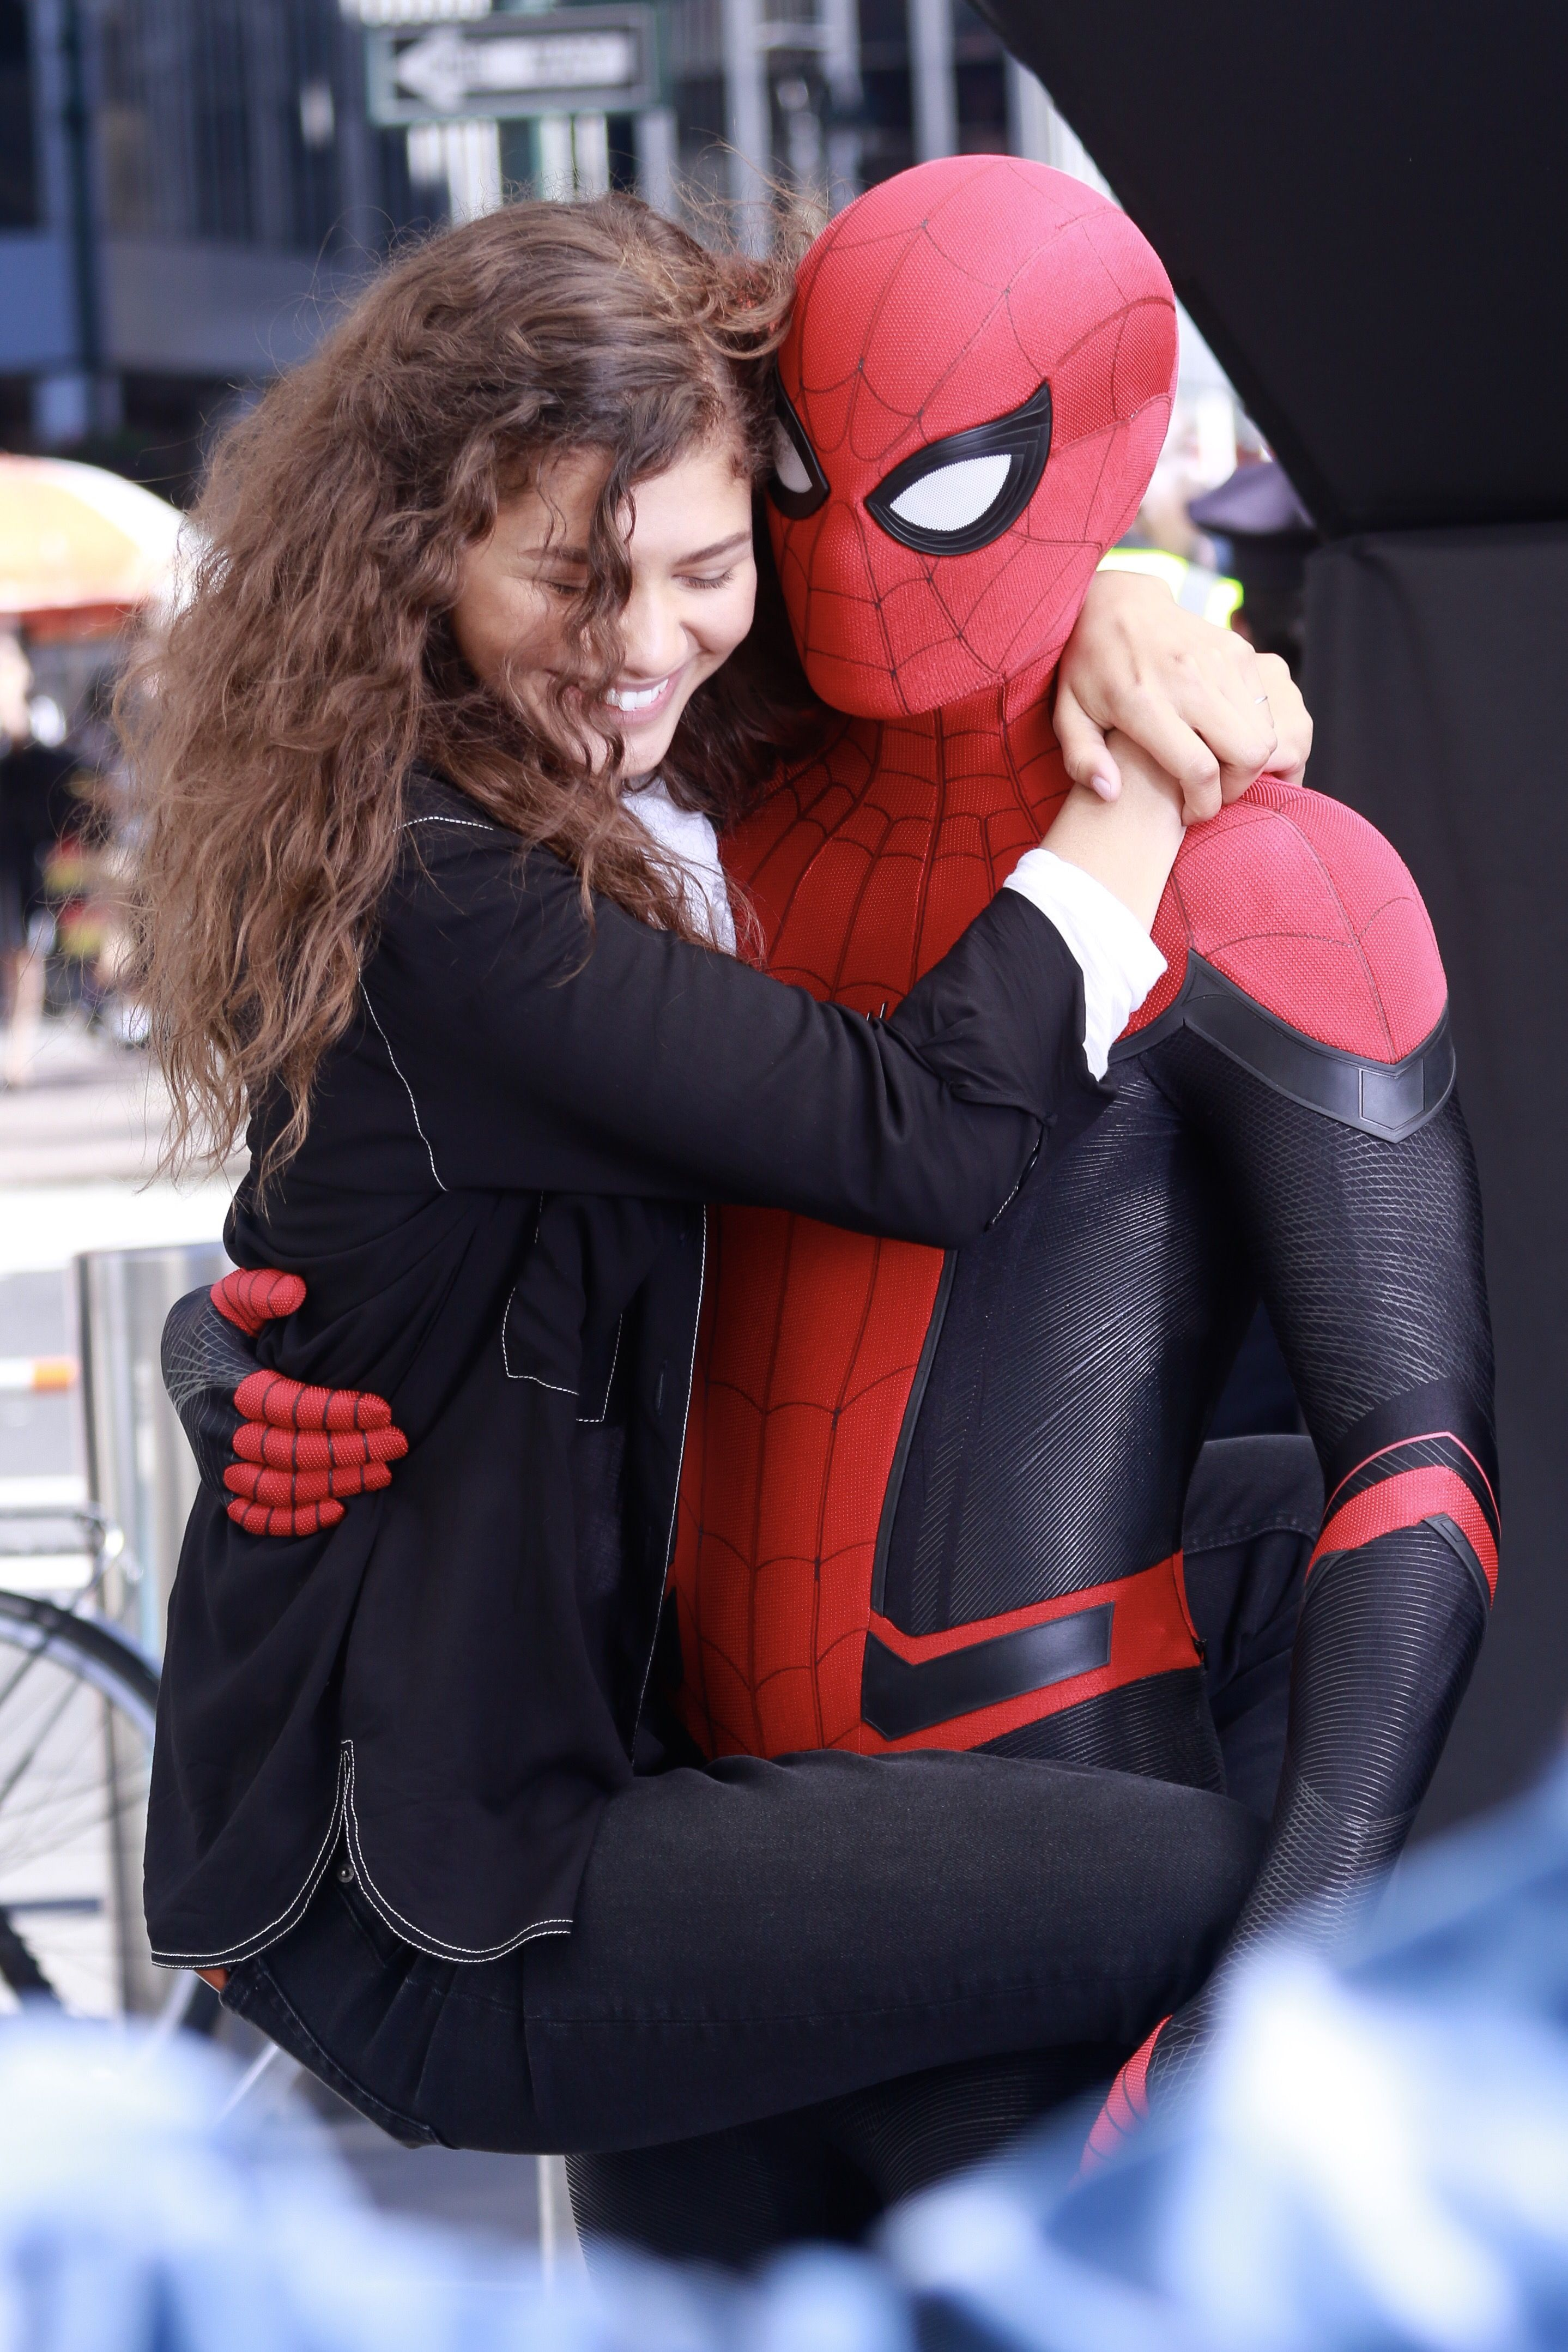 Fans Love Zendaya and Tom Holland's Chemistry in